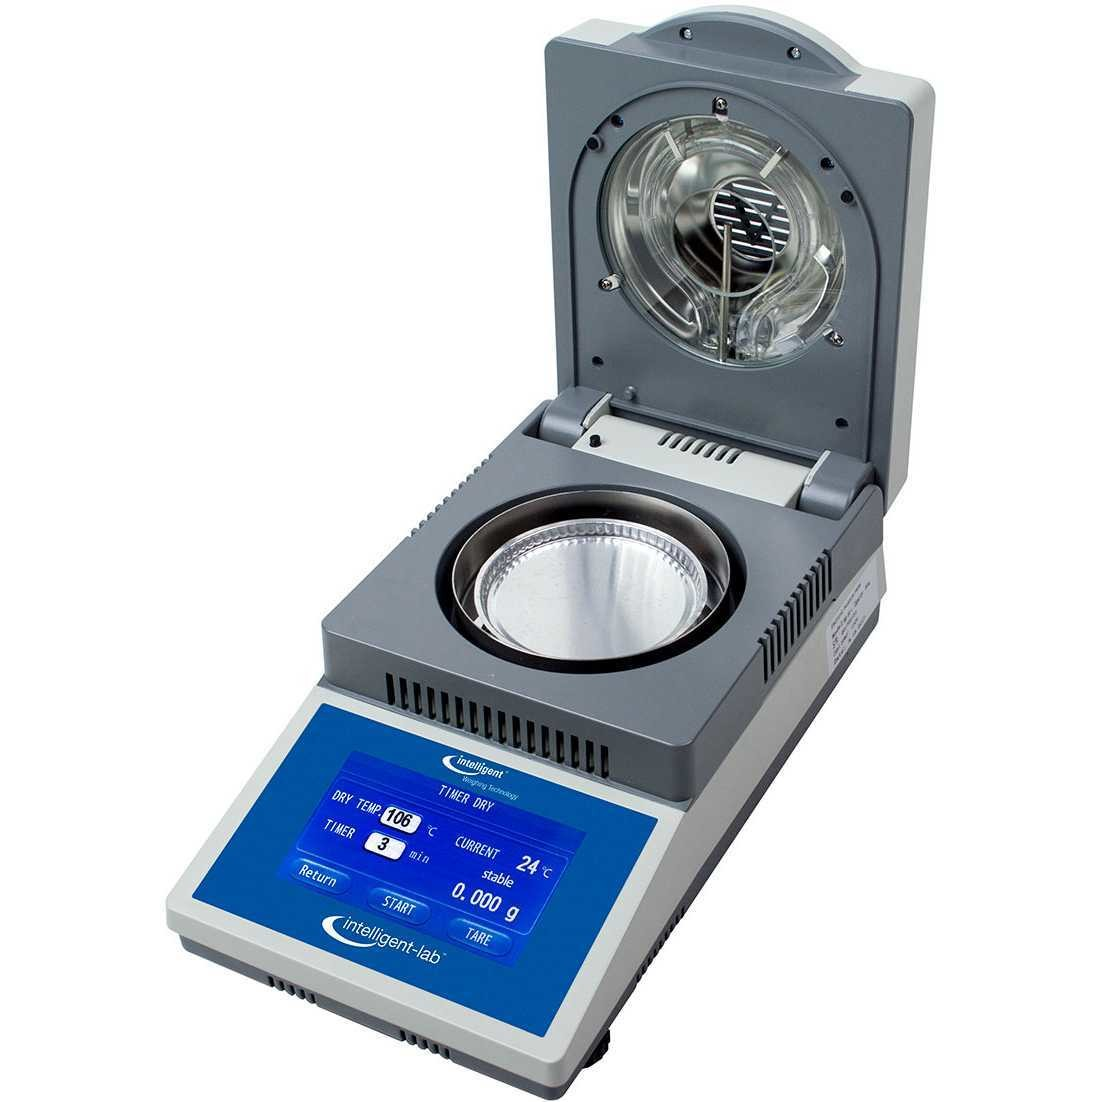 Intelligent Weighing IL-50 0.01 TS Moisture Analyzer       (50g. x 0.01g.)